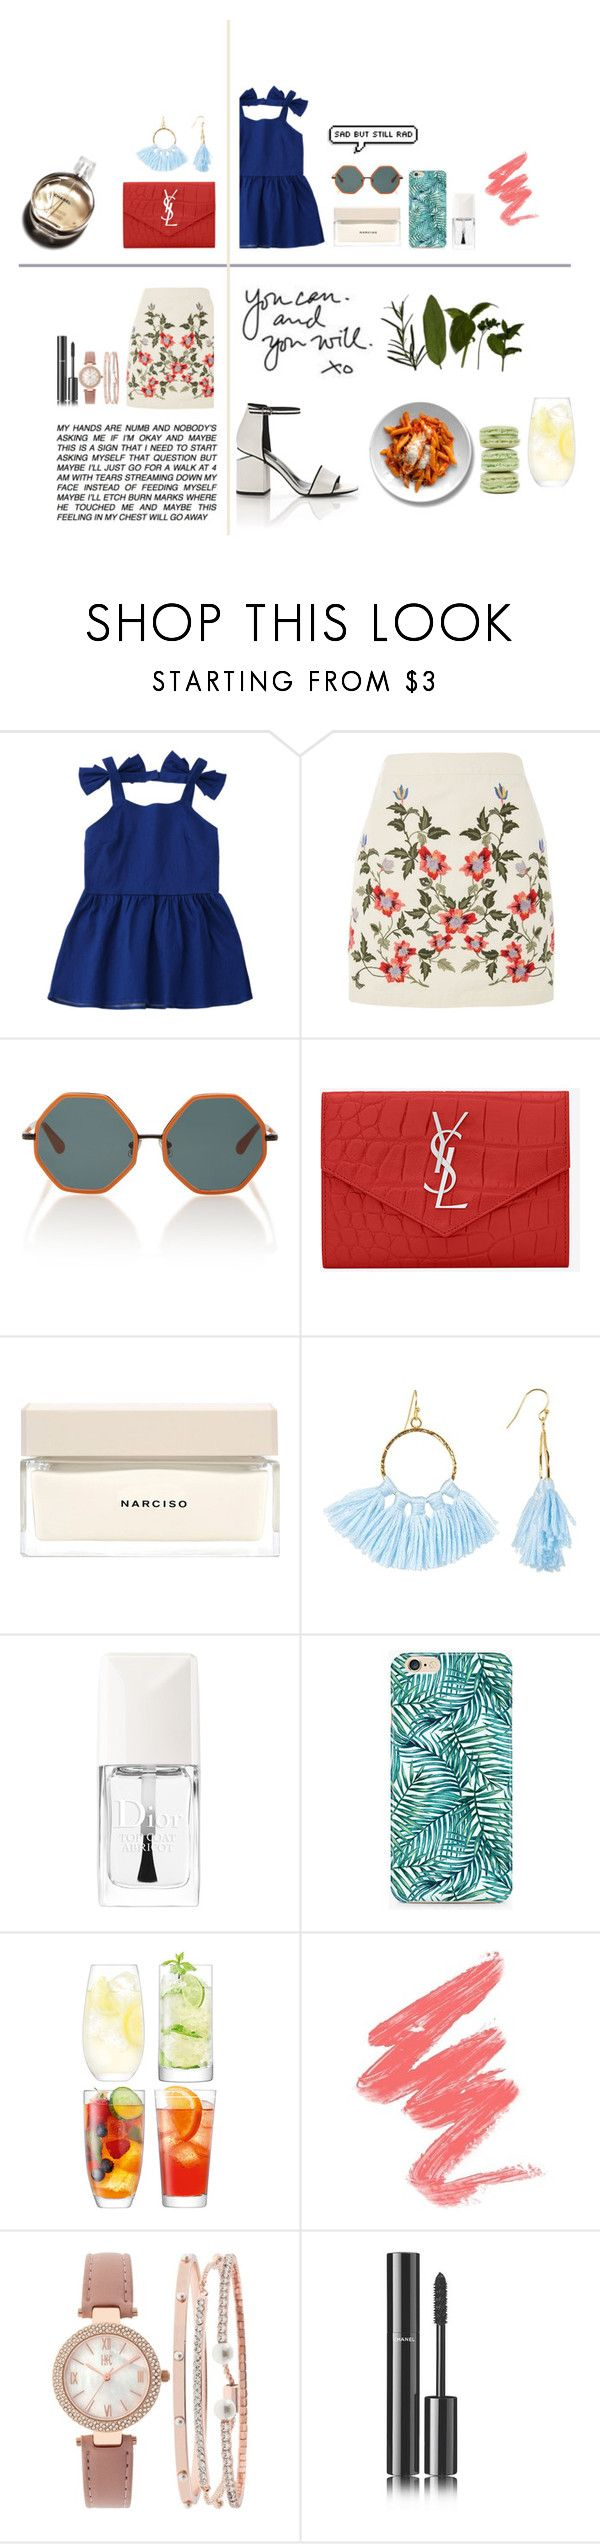 """""""Untitled #389"""" by soojinchoi ❤ liked on Polyvore featuring Topshop, Rosie Assoulin, Yves Saint Laurent, Narciso Rodriguez, Taolei, Chanel, Christian Dior, LSA International, INC International Concepts and Alexander Wang"""